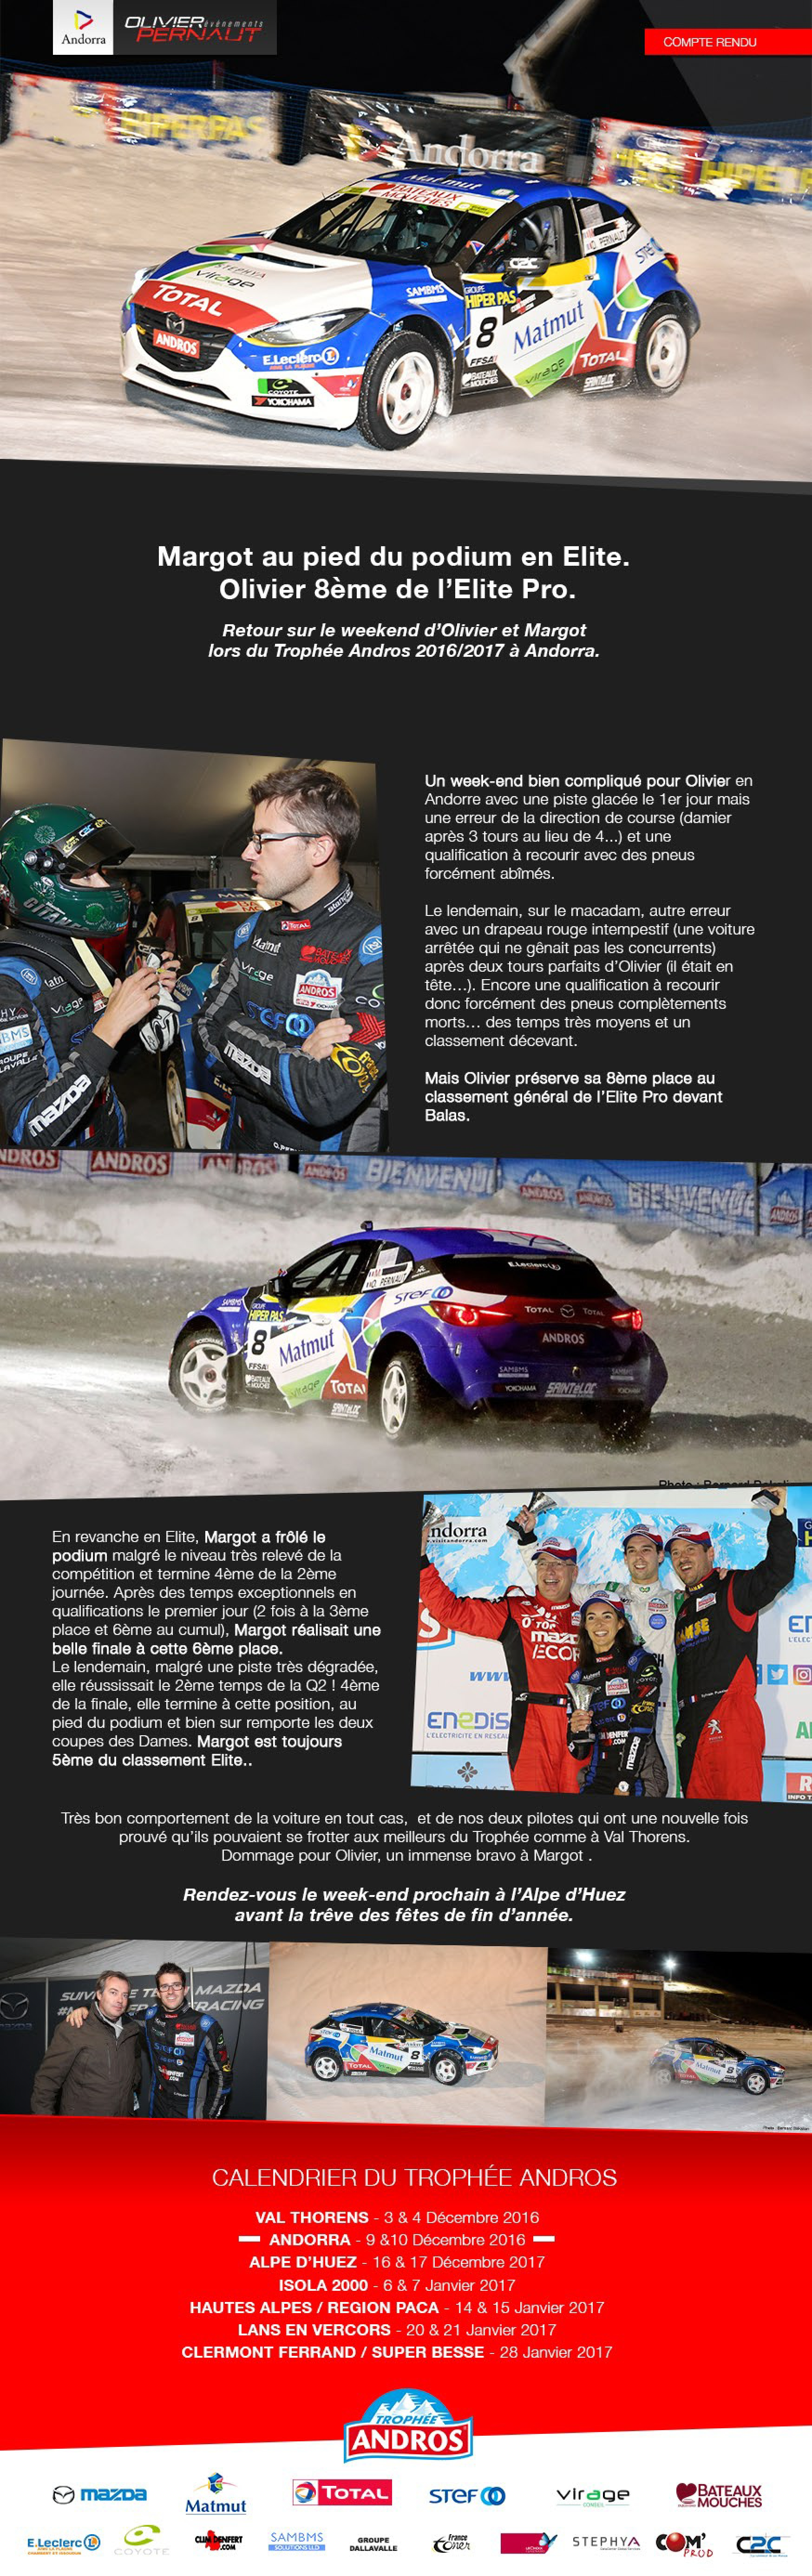 Trophee-Andros-2017_Andorre_Pernaut_Laffite-page-0